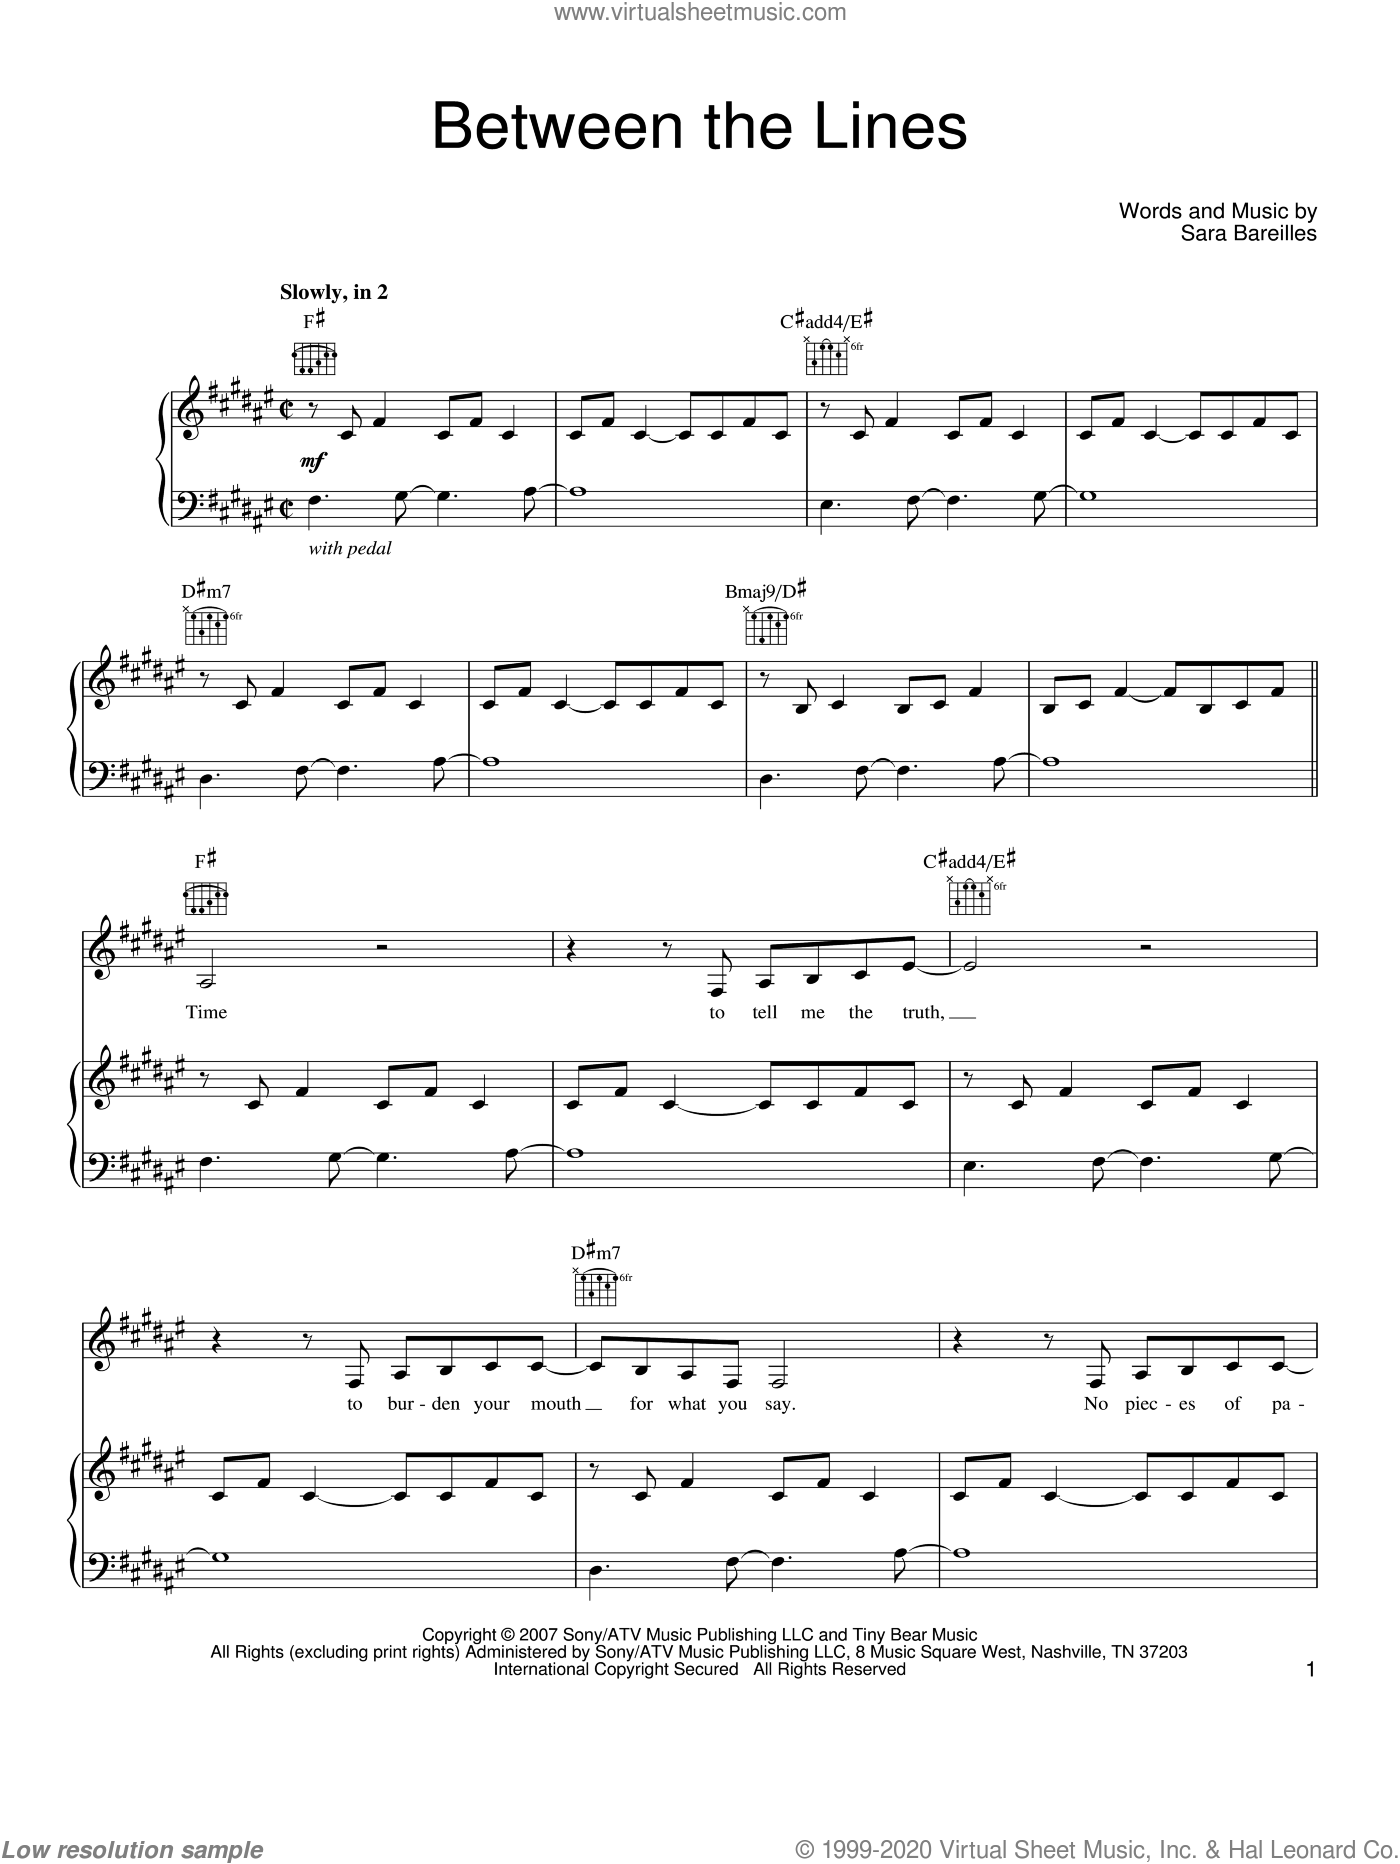 Between The Lines sheet music for voice, piano or guitar by Sara Bareilles, intermediate